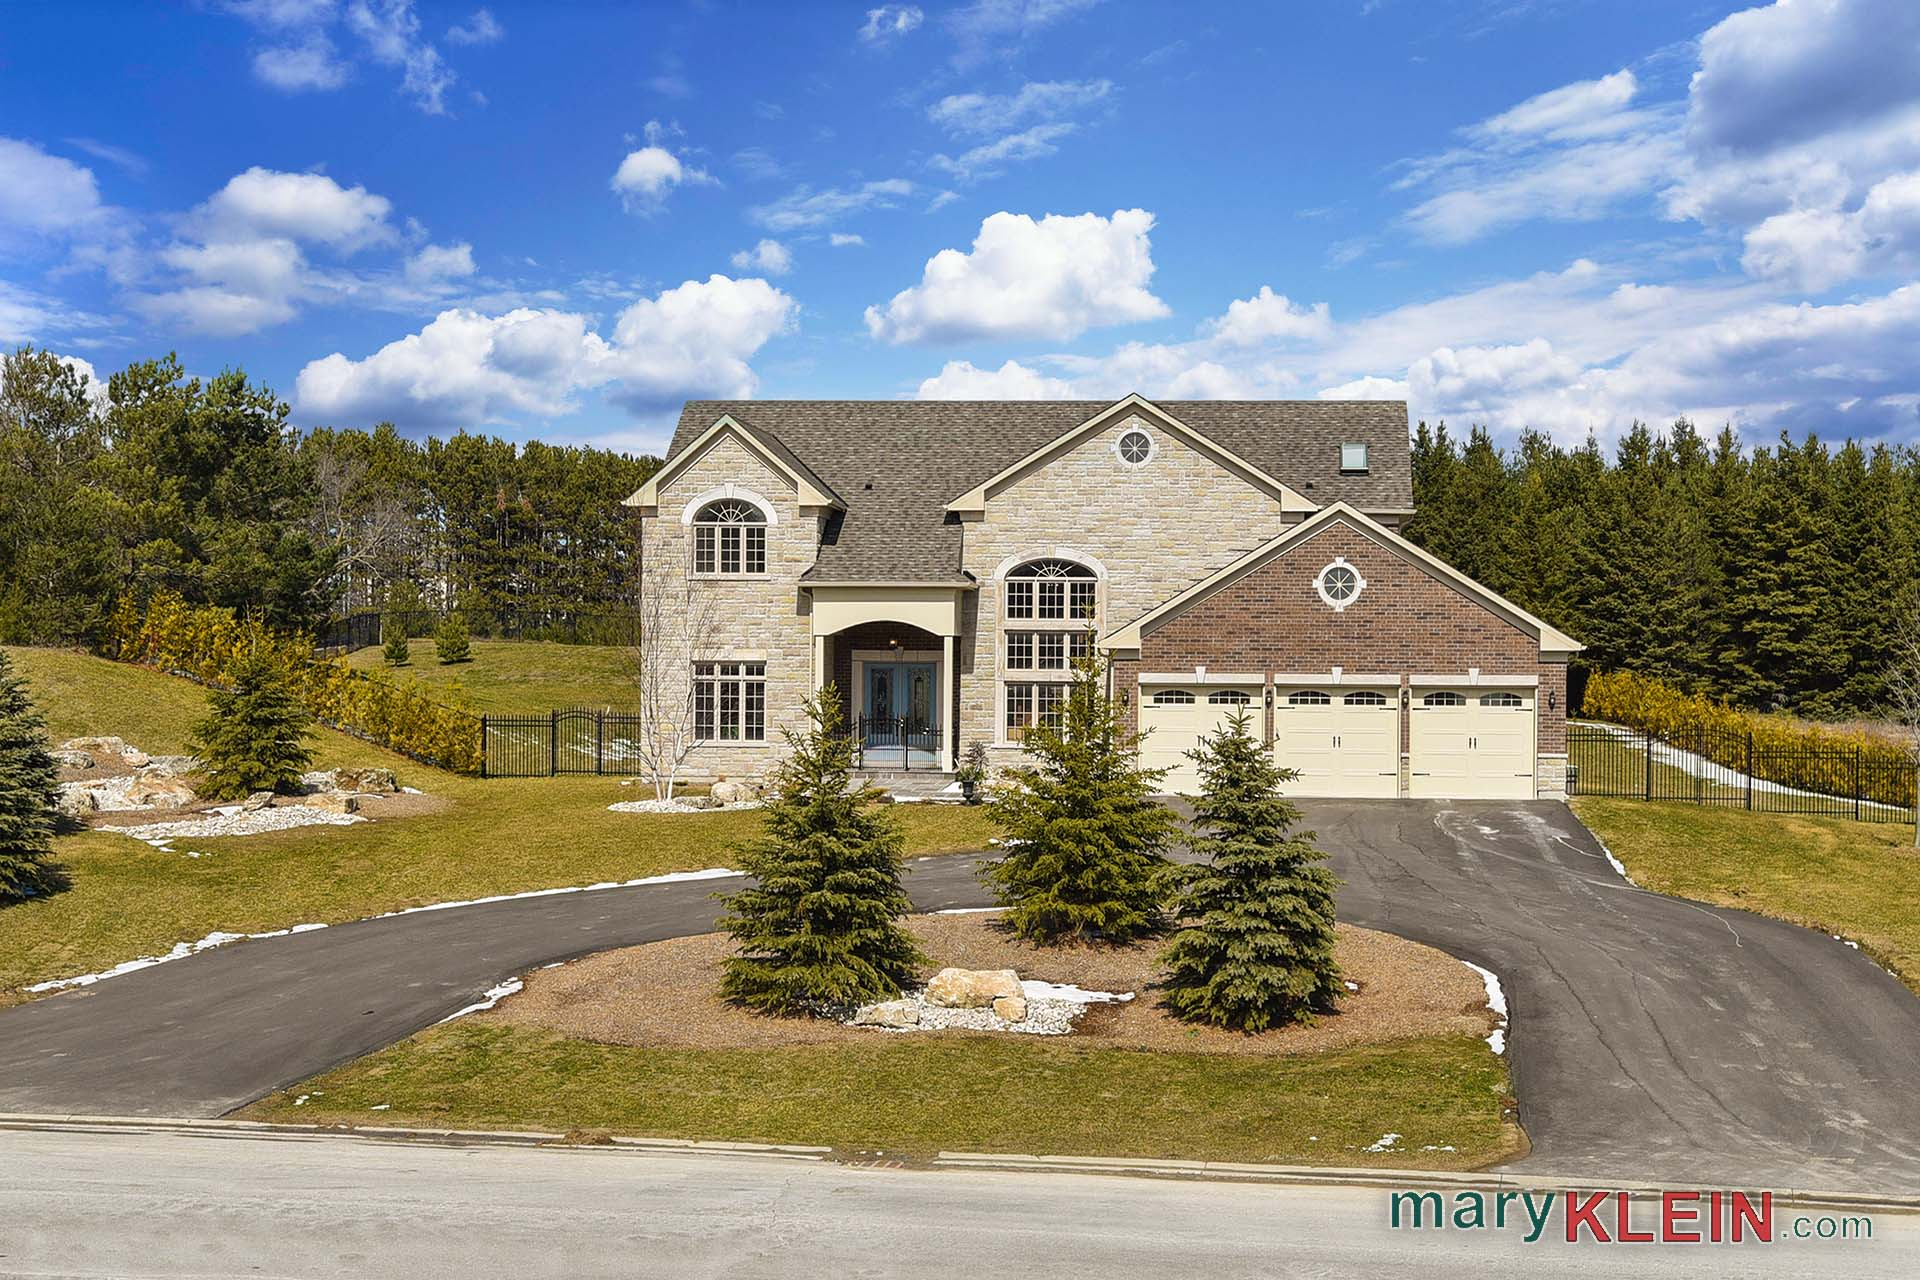 52 Buckstown Trail, Palgrave, Caledon, Home for sale, Mary Klein